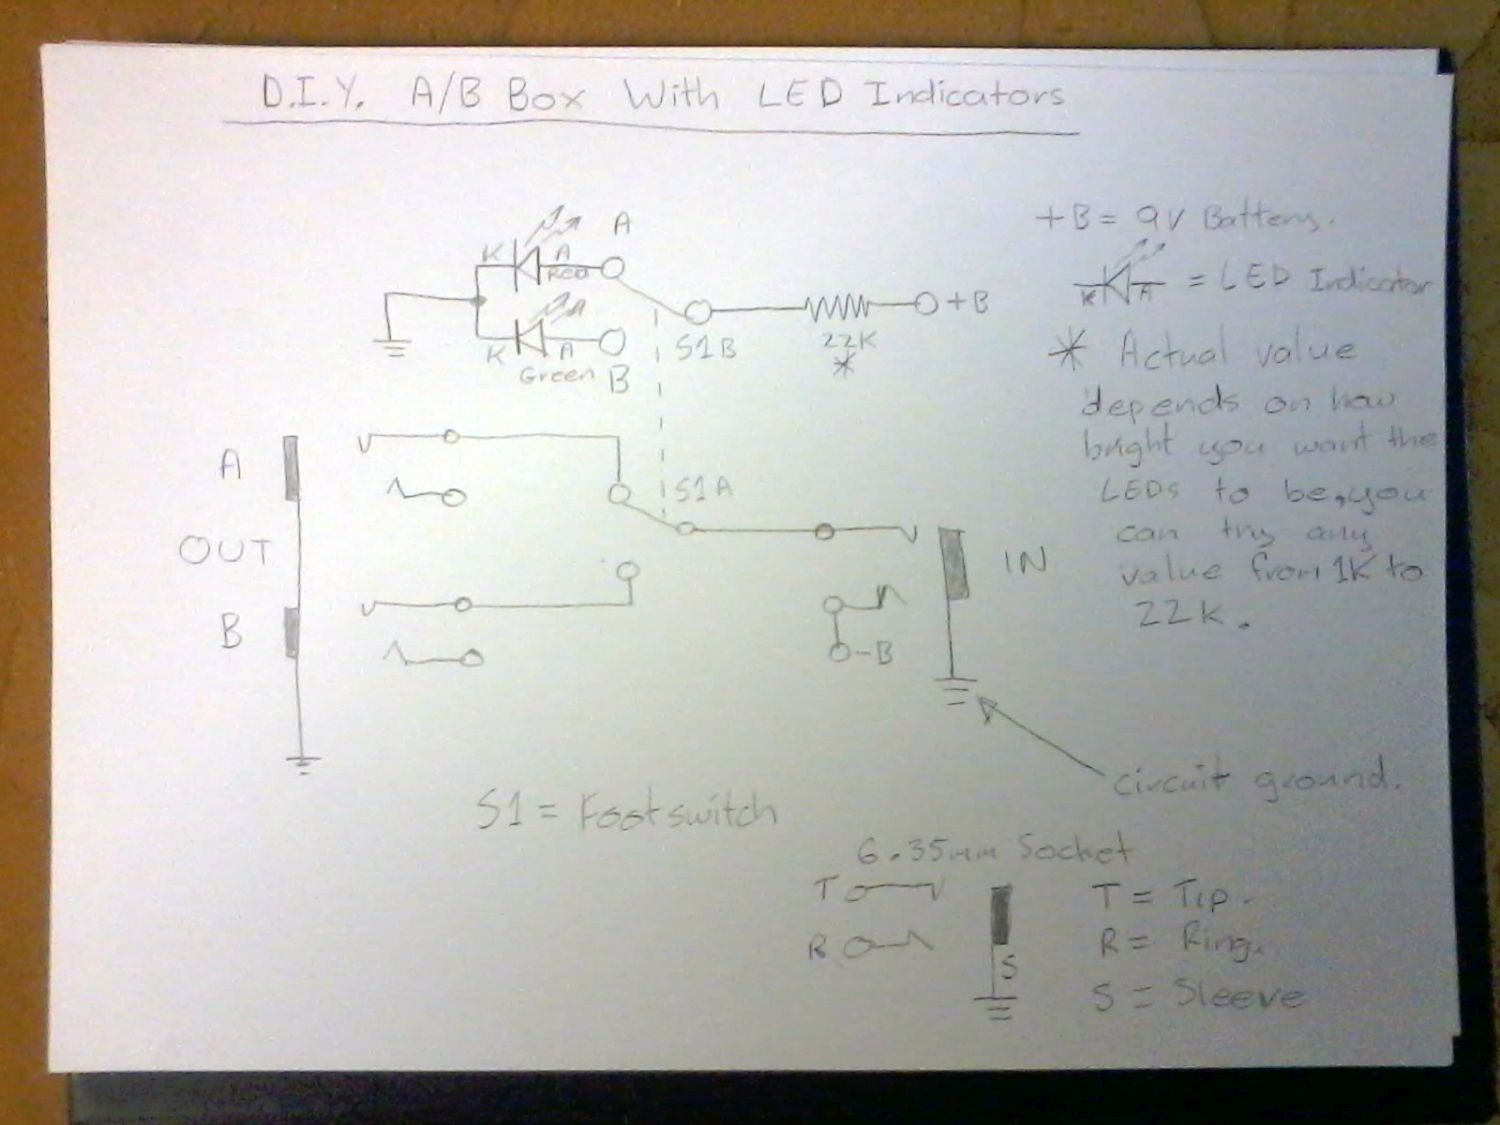 Diy A B Box Page 2 Ab Guitar Wiring Diagram Name Schematic Resized Views 36